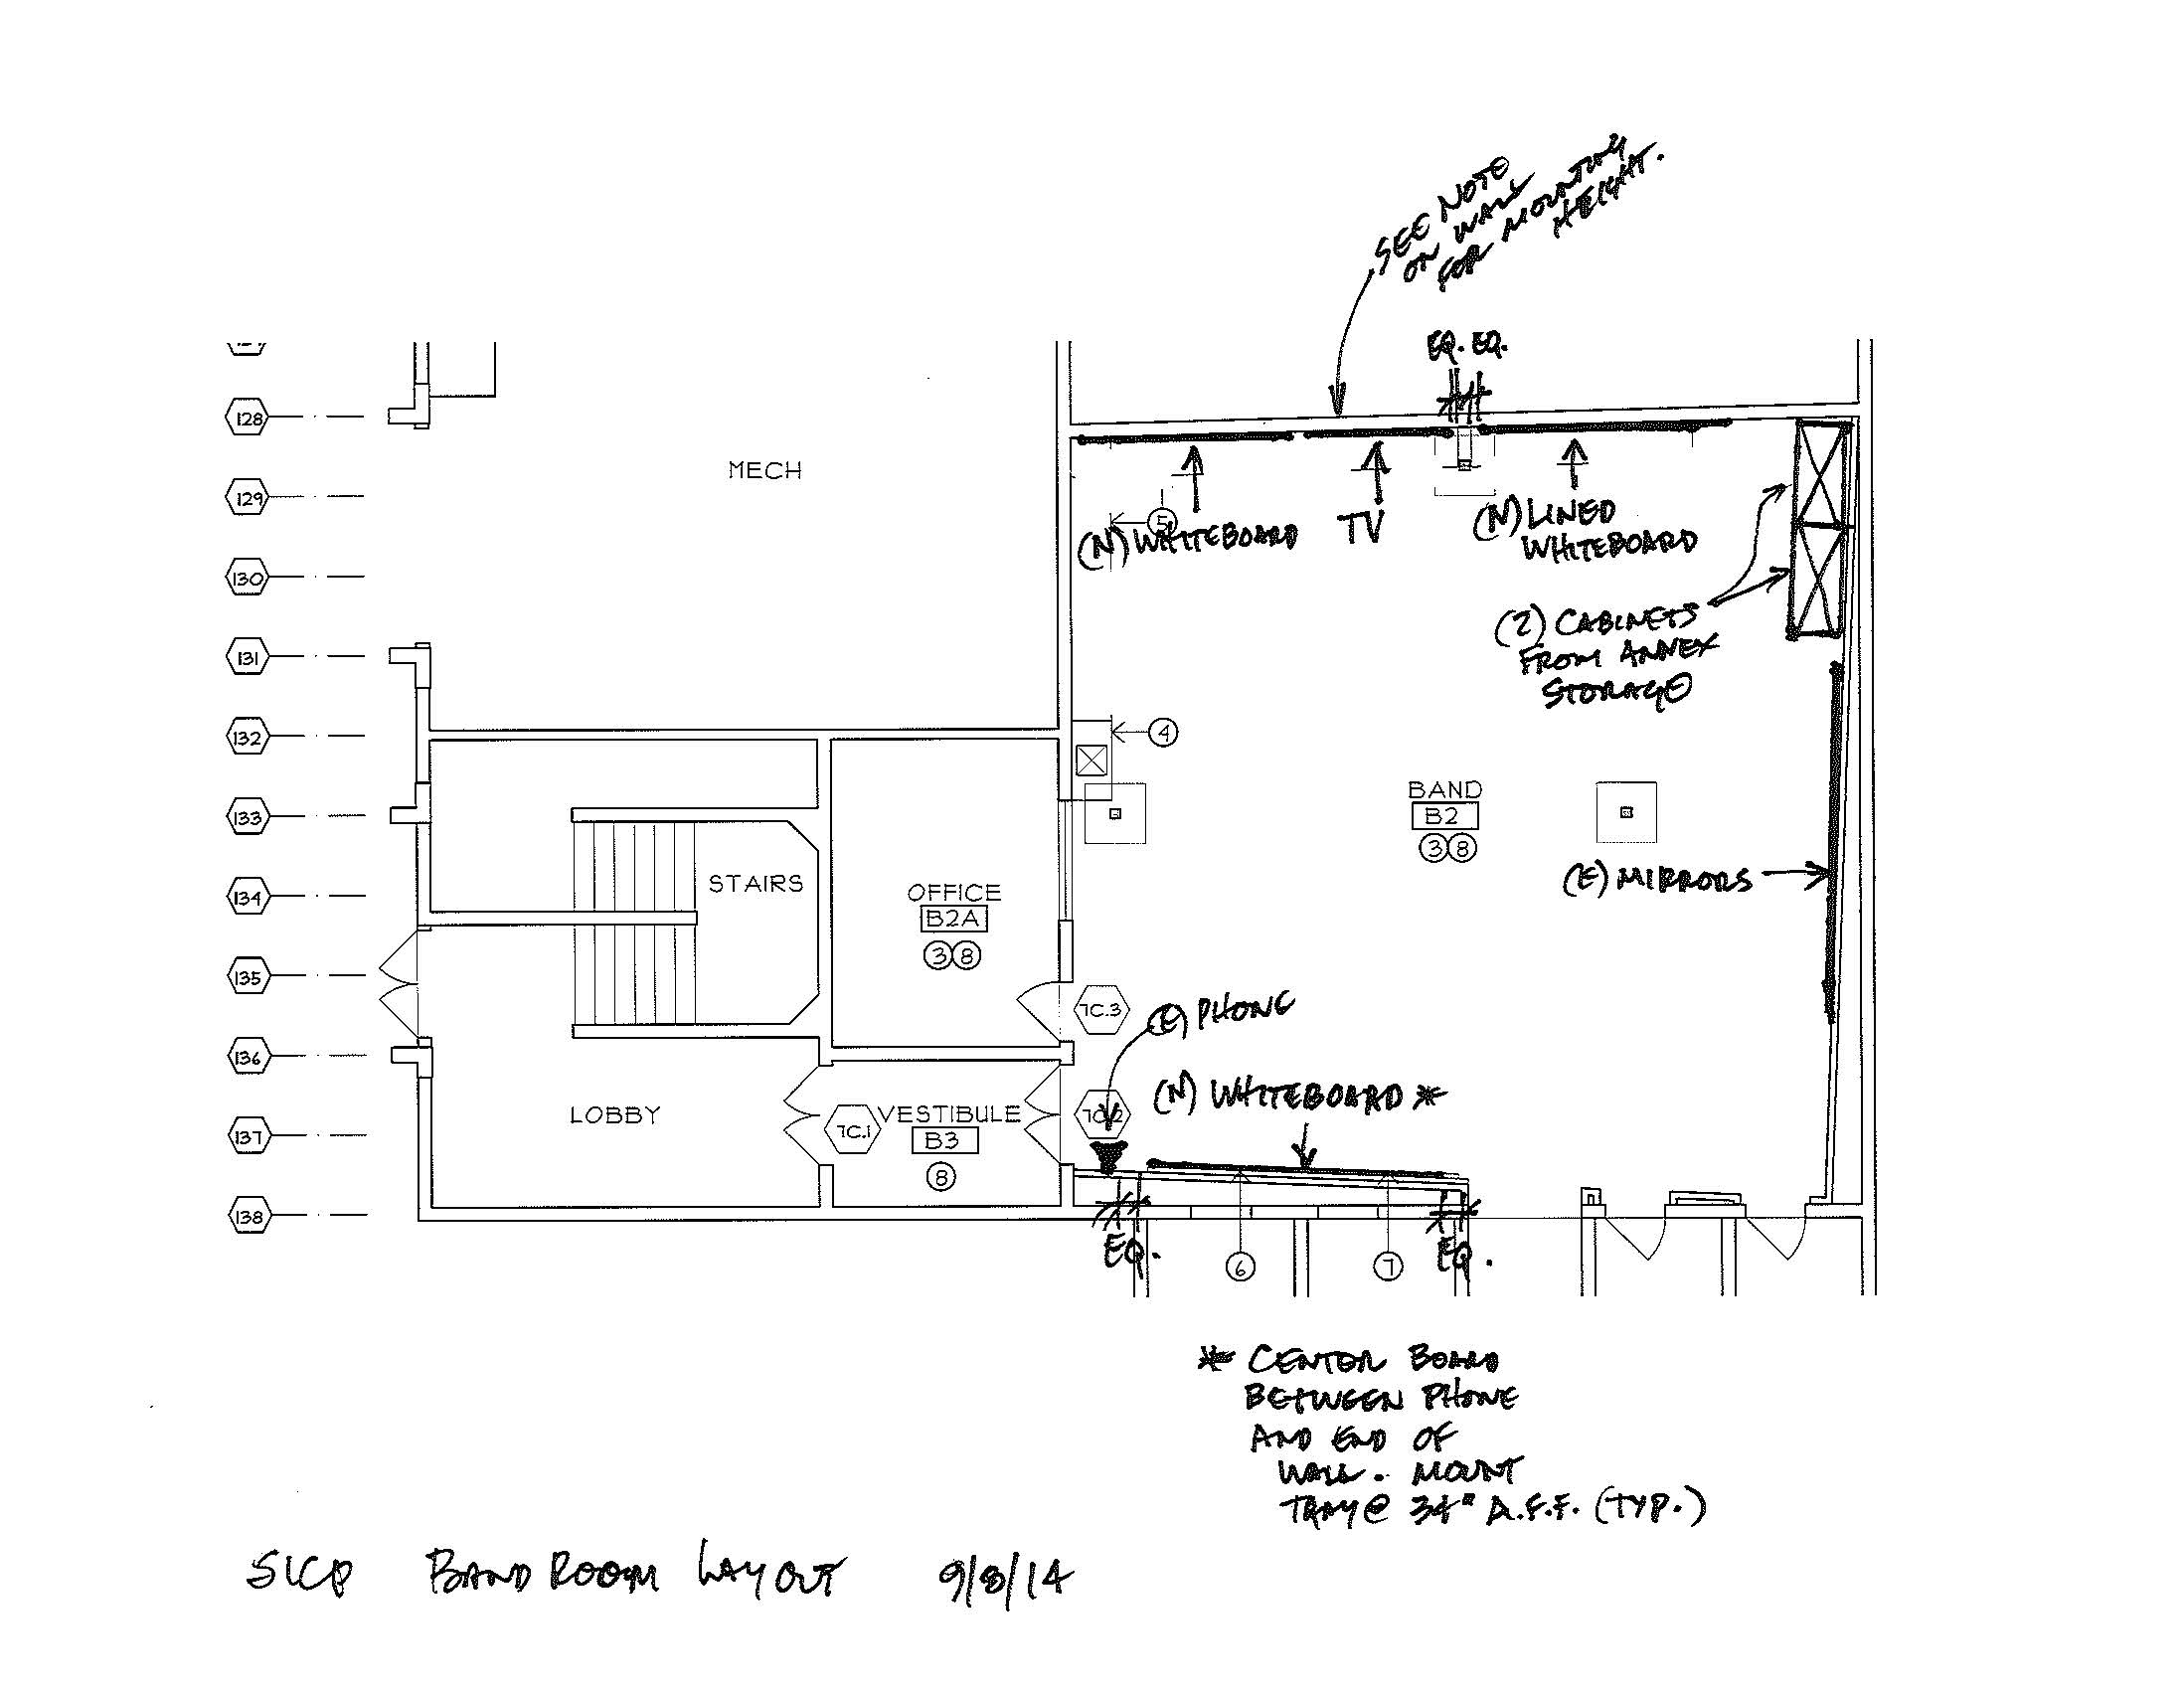 Band Room blue prints